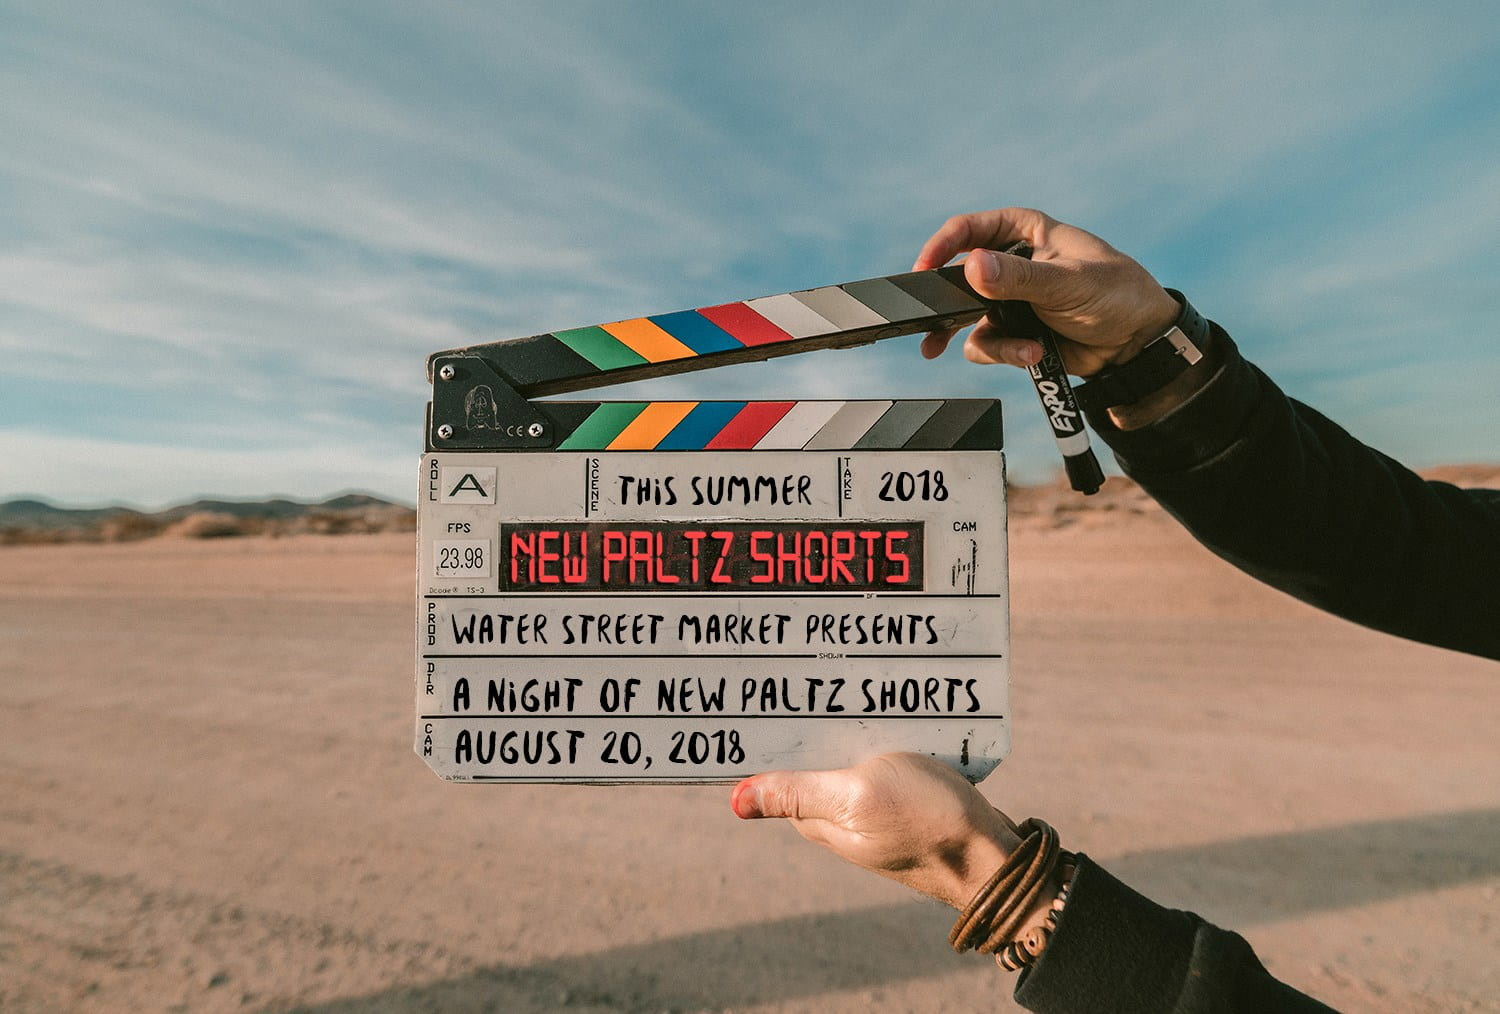 Clapperboard for New Paltz Shorts